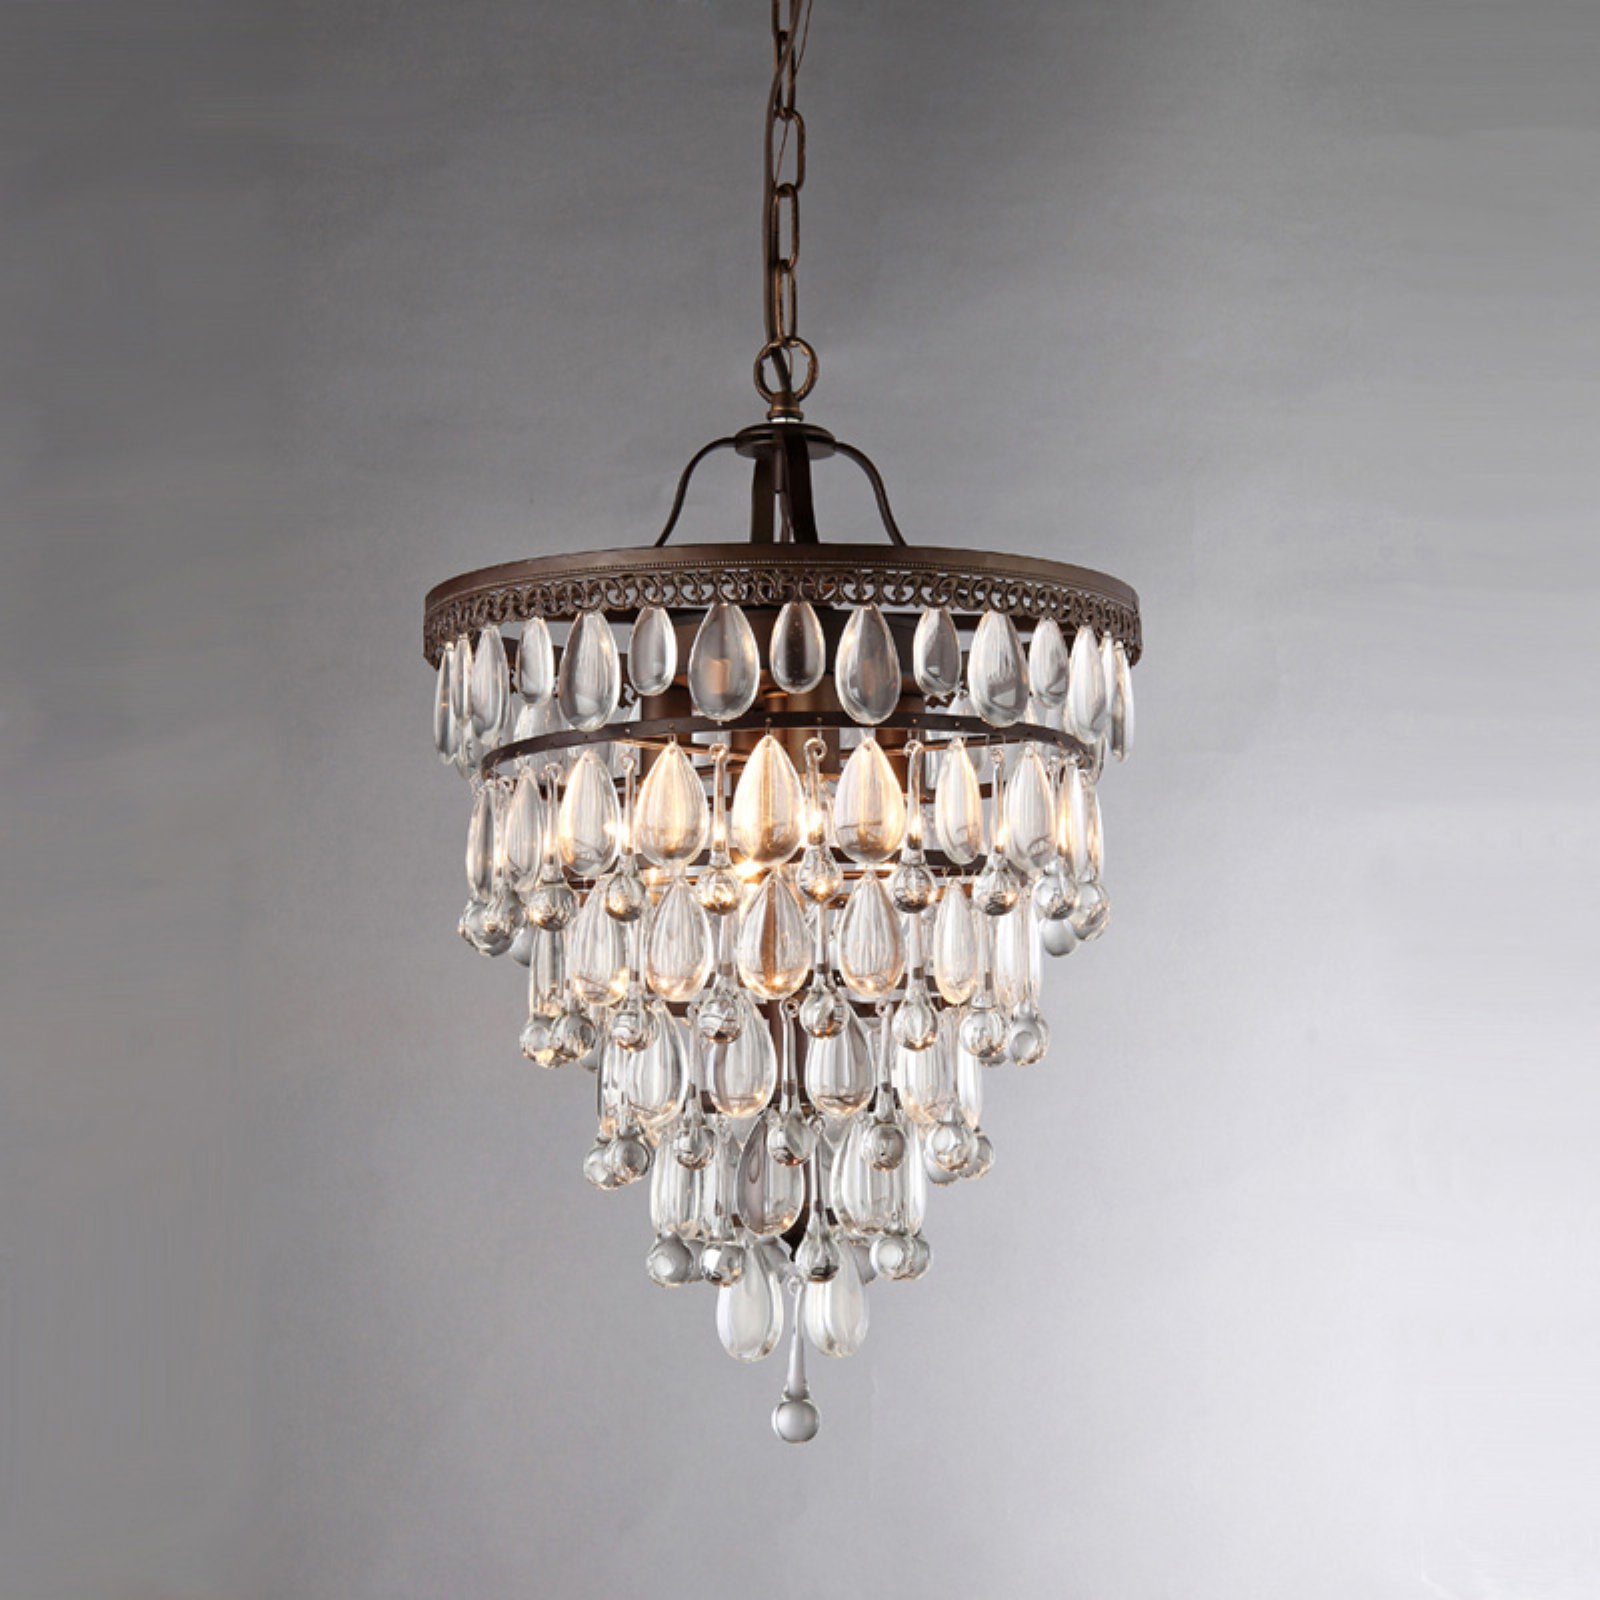 Warehouse of Tiffany Martinee RL8076 Chandelier